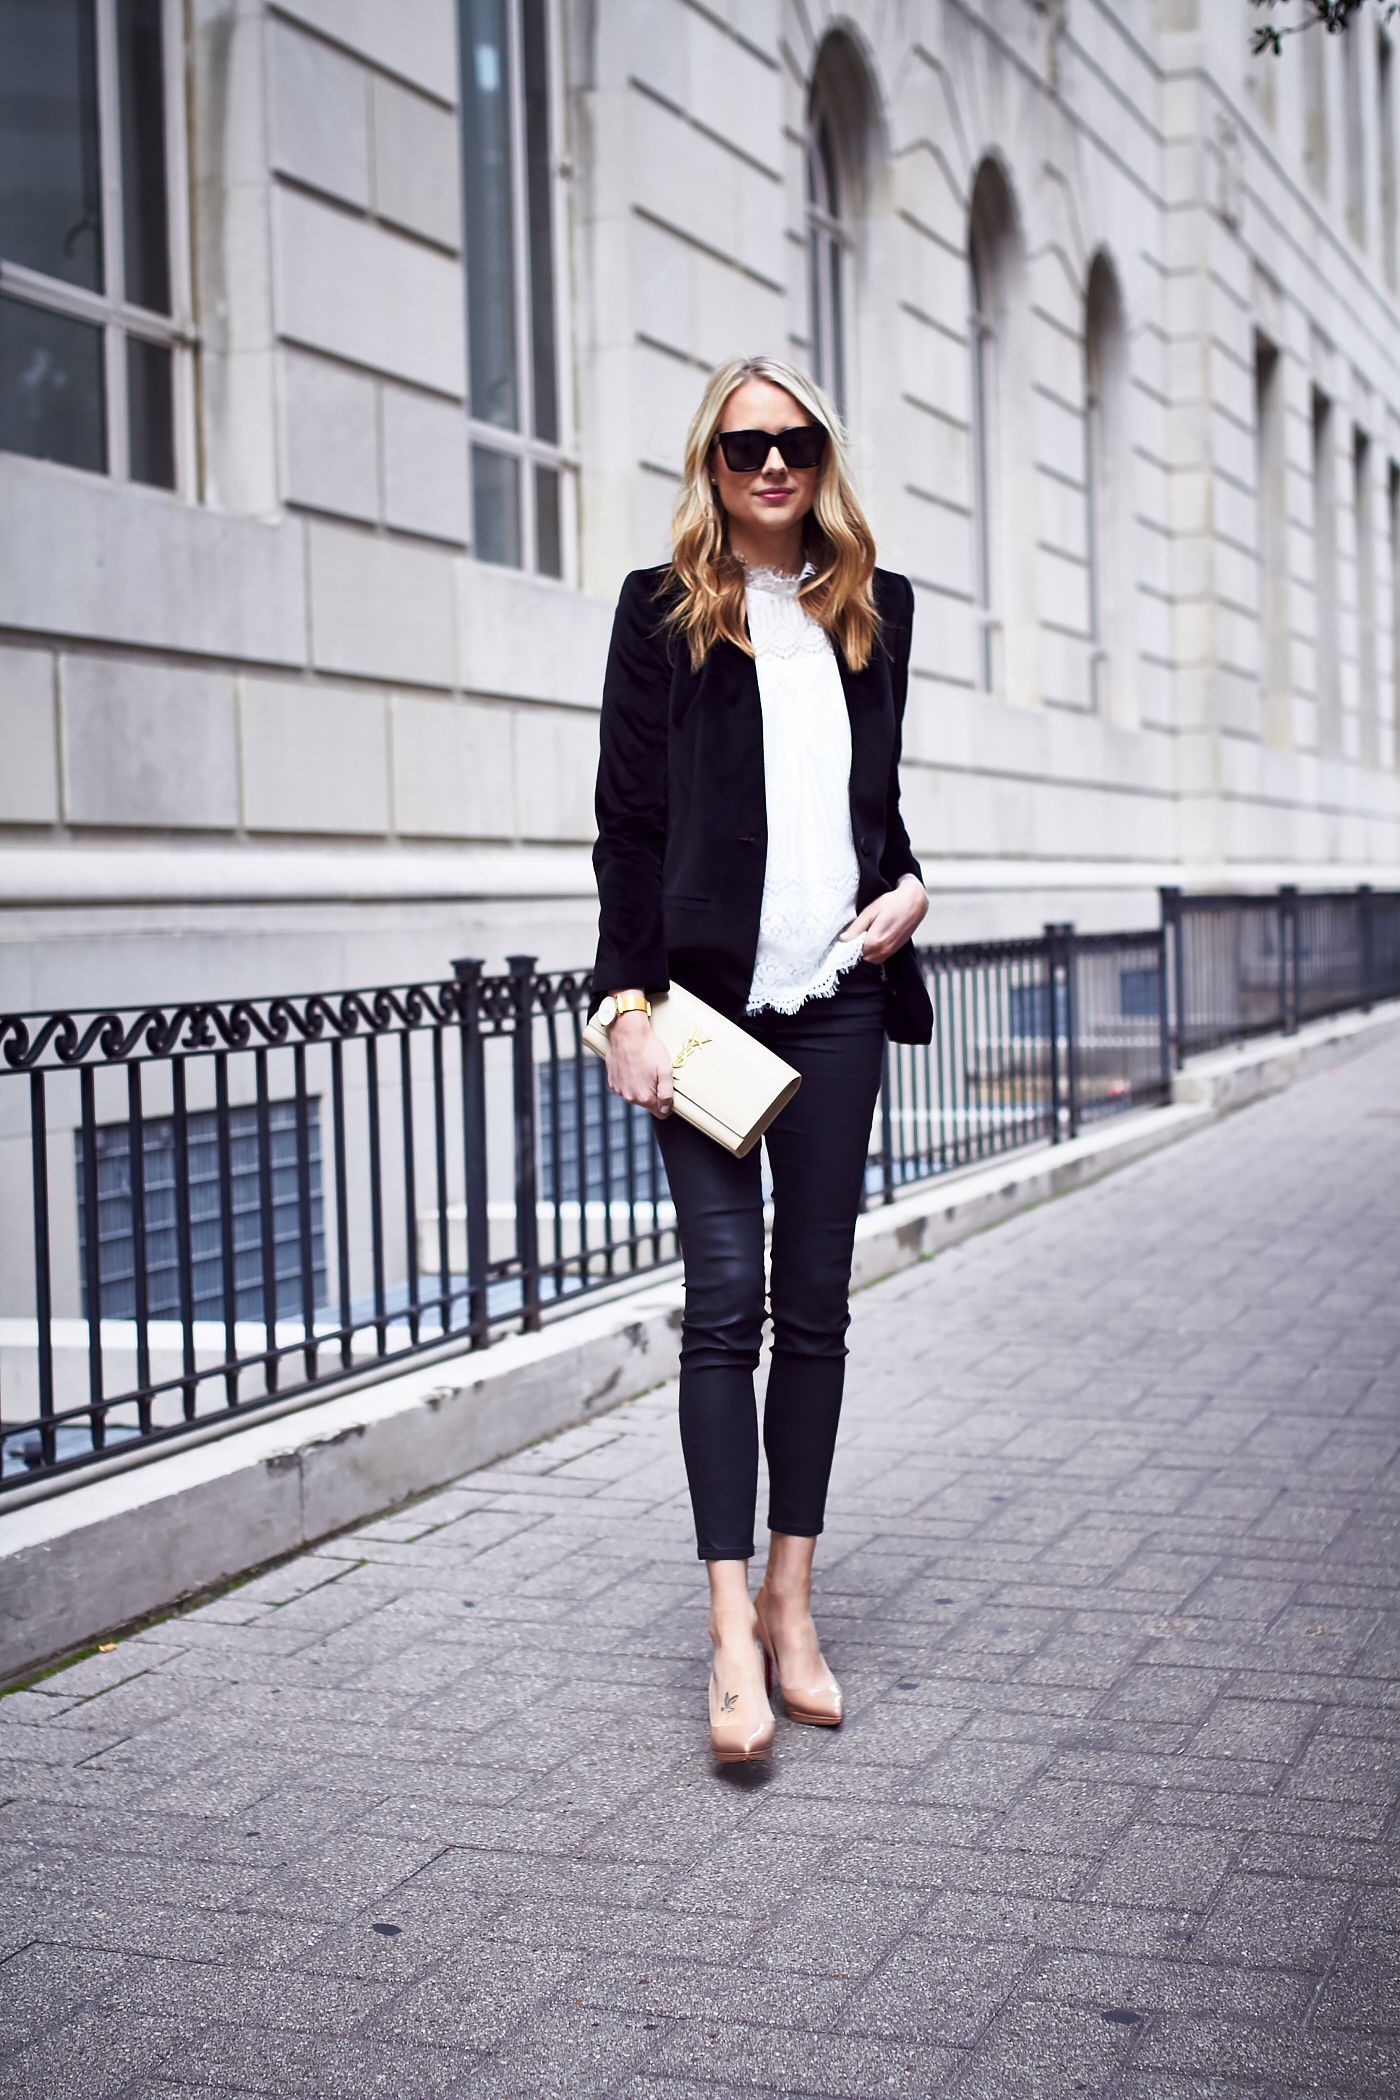 Fall Outfit, Holiday Outfit, White Lace Top, Black Velvet Blazer, Saint Laurent Clutch, Black Skinny Jeans, Nude Pumps